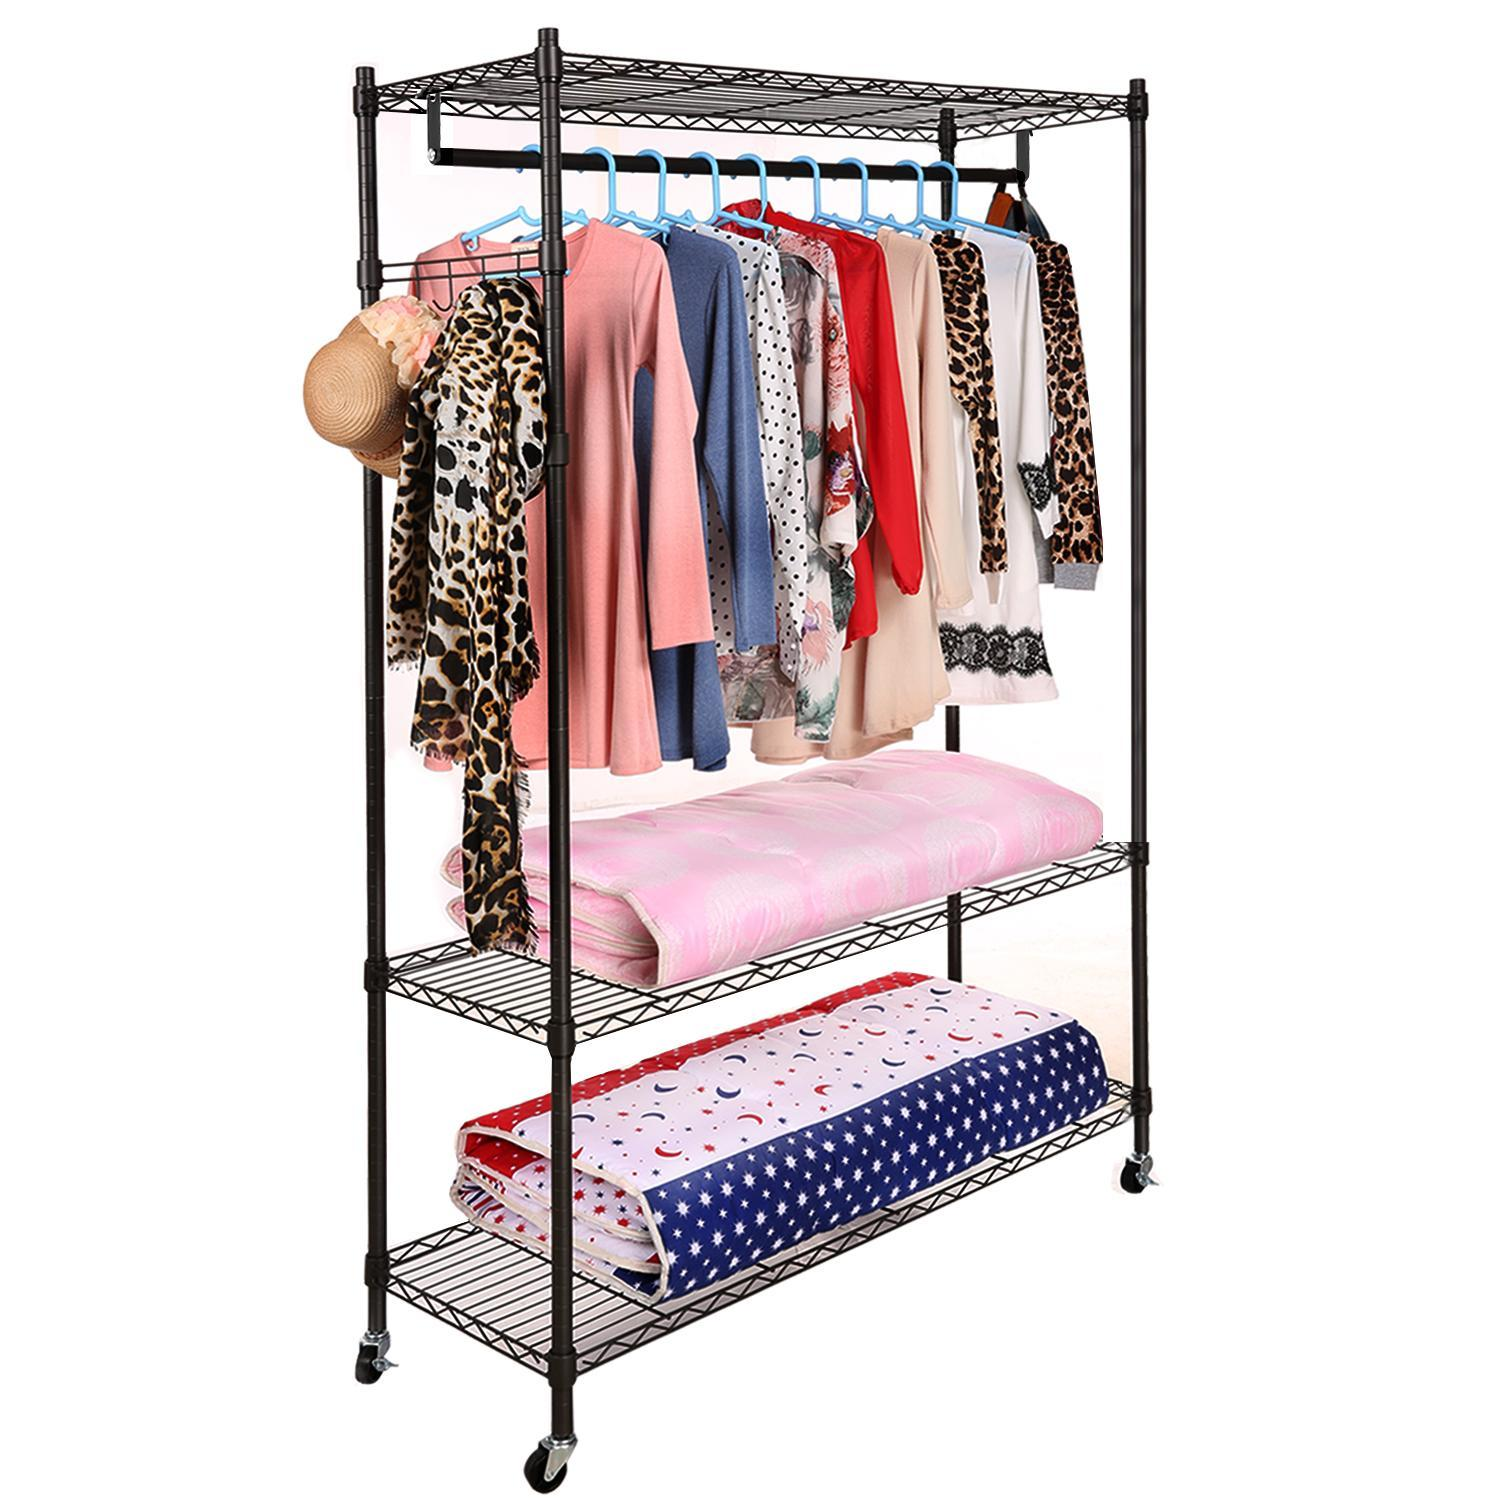 3-Tiers Large Size Heavy Duty Wire Shelving Garment Rolling Rack Clothing Rack with Double Clothes Rods and Lockable Wheels